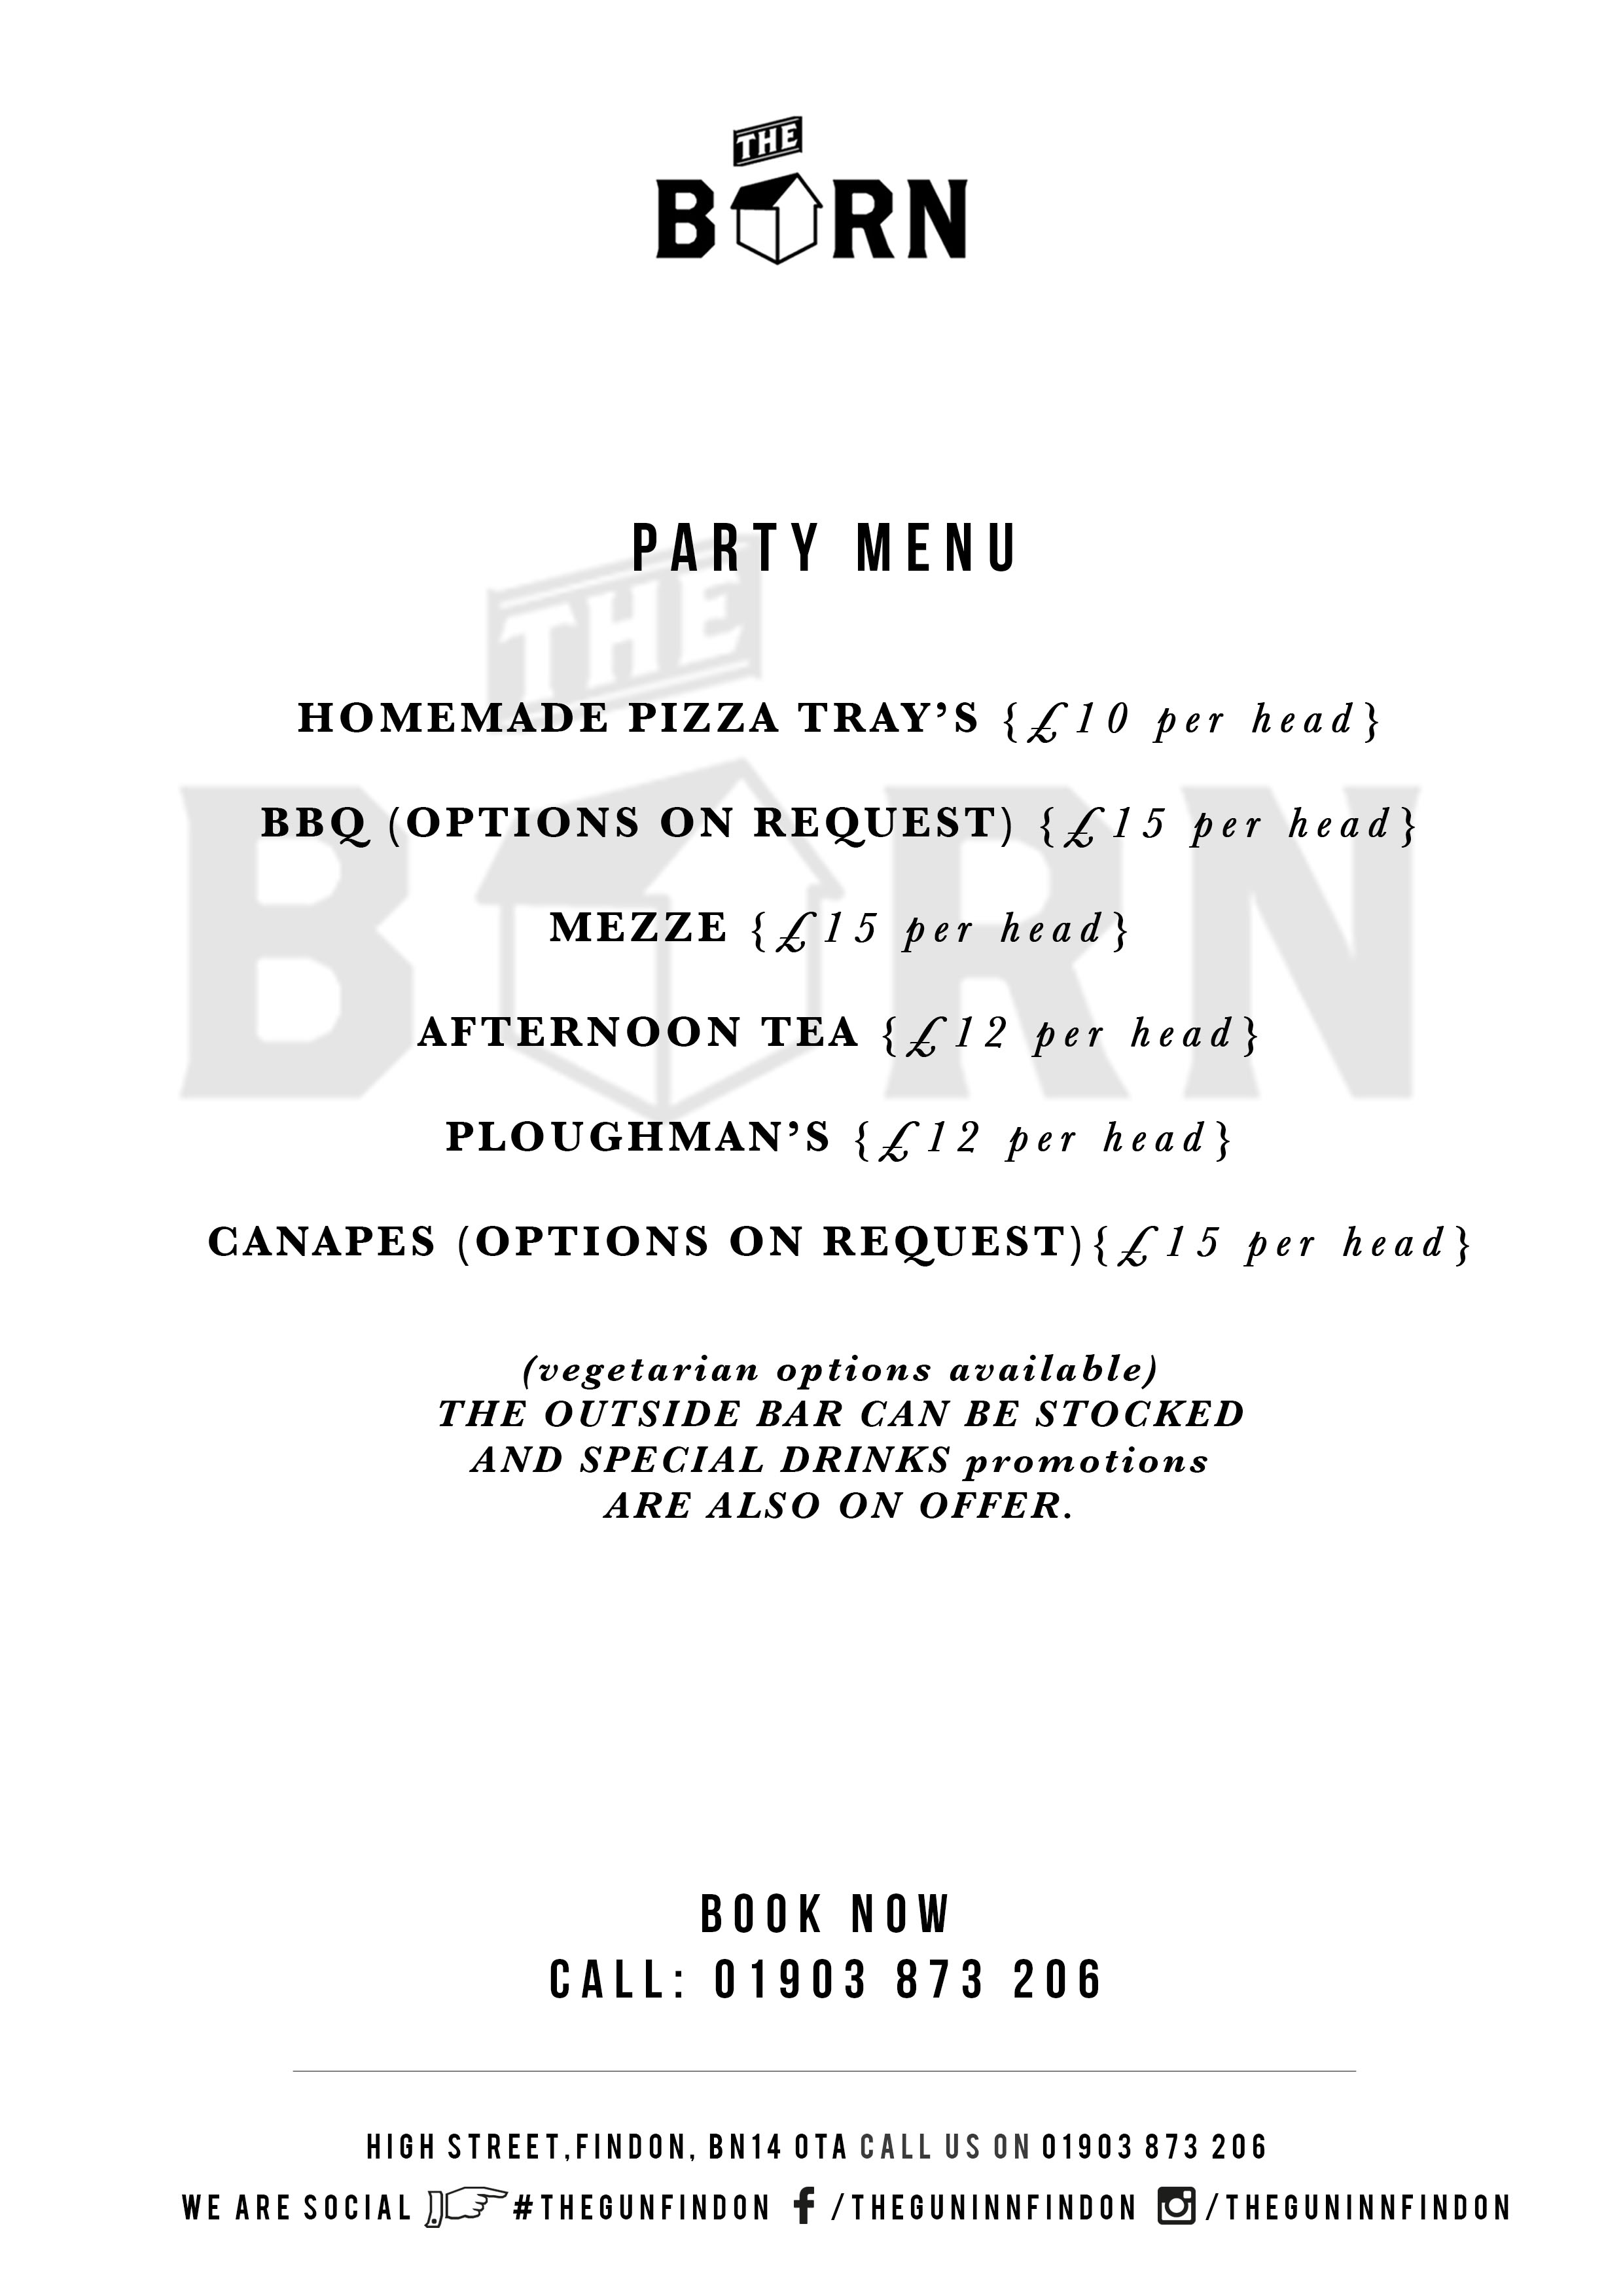 07.06.17-The-Barn-Party-Menu.jpg